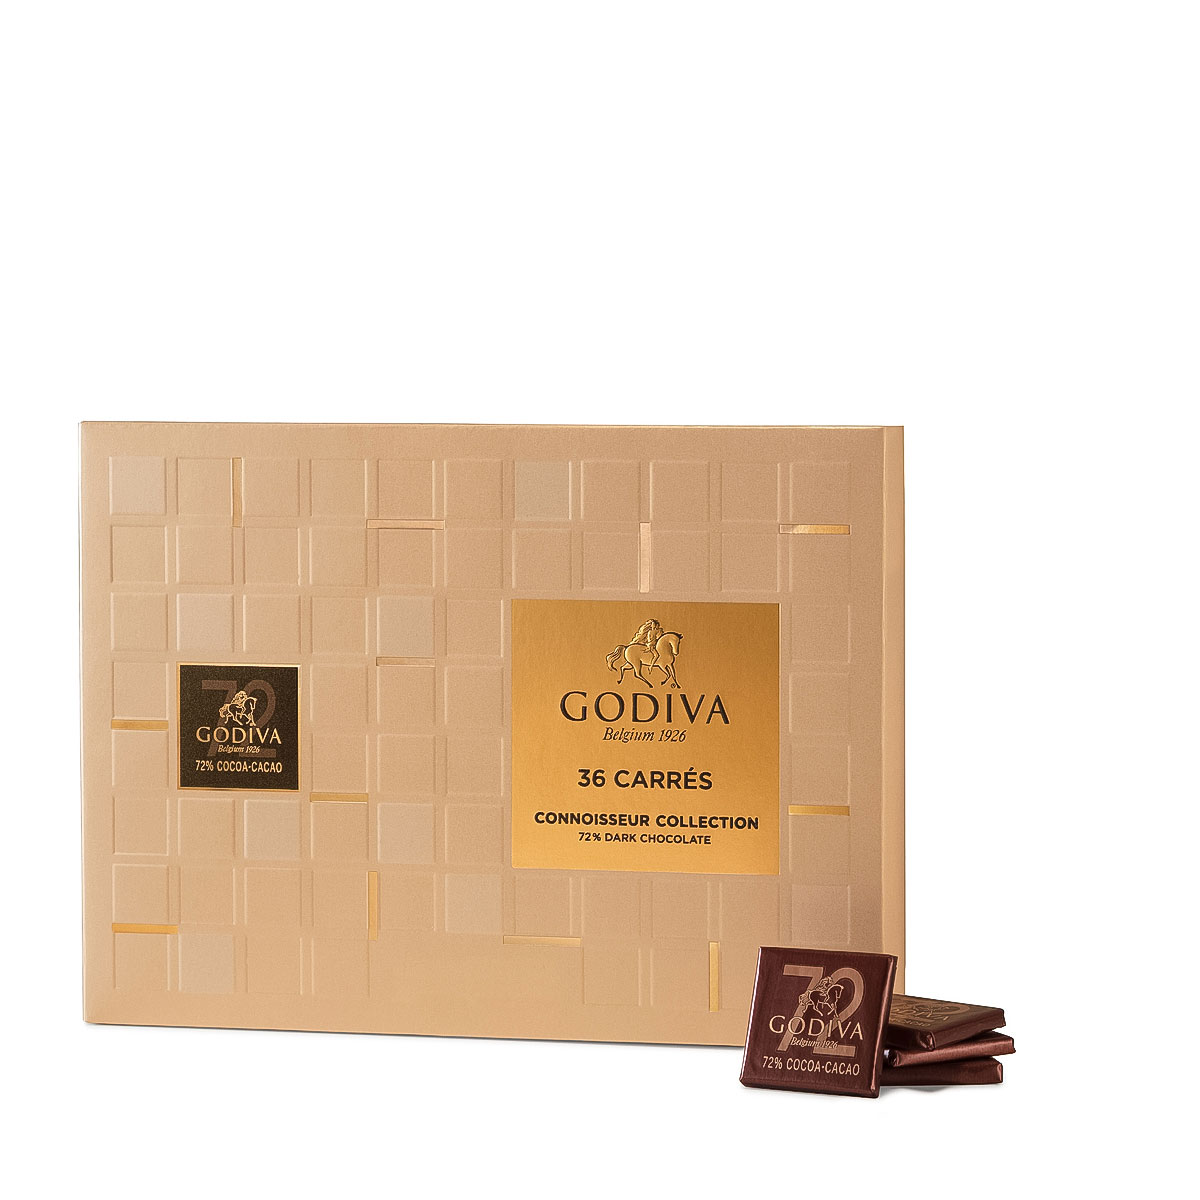 Godiva Carrés Dark 72%, 36 pcs - Delivery in Europe Others - Godiva